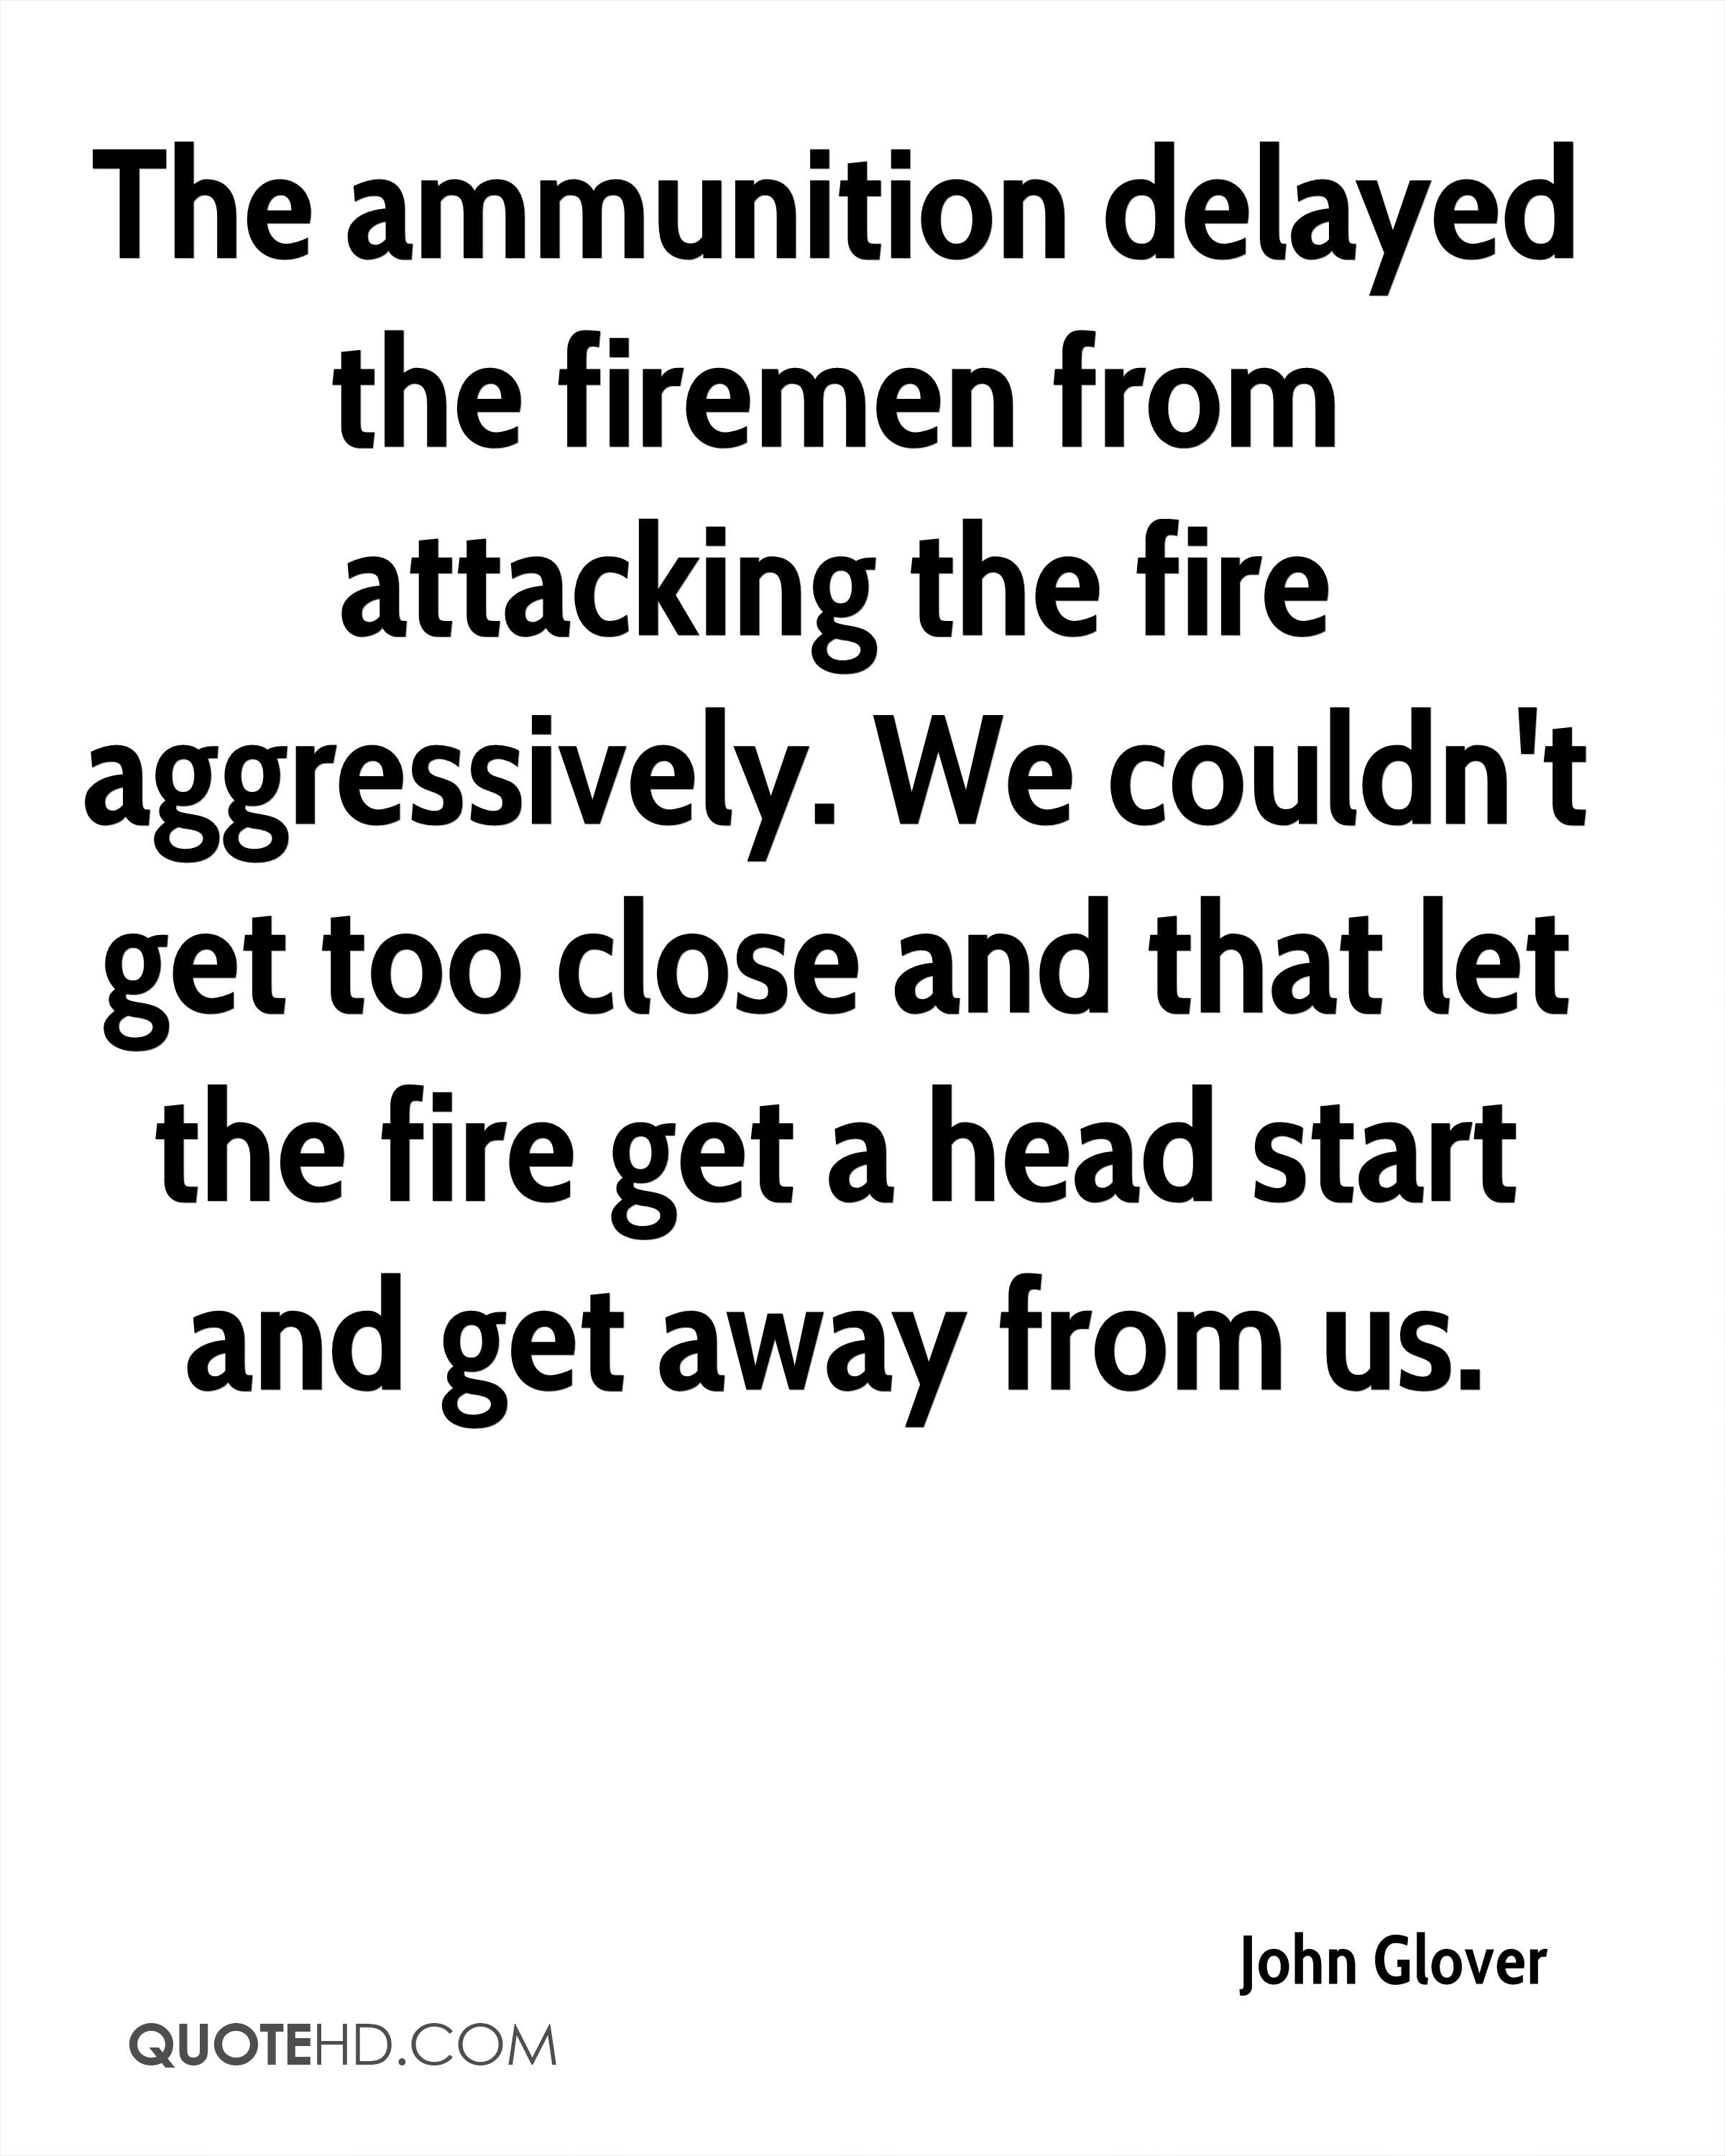 The ammunition delayed the firemen from attacking the fire aggressively. We couldn't get too close and that let the fire get a head start and get away from us.